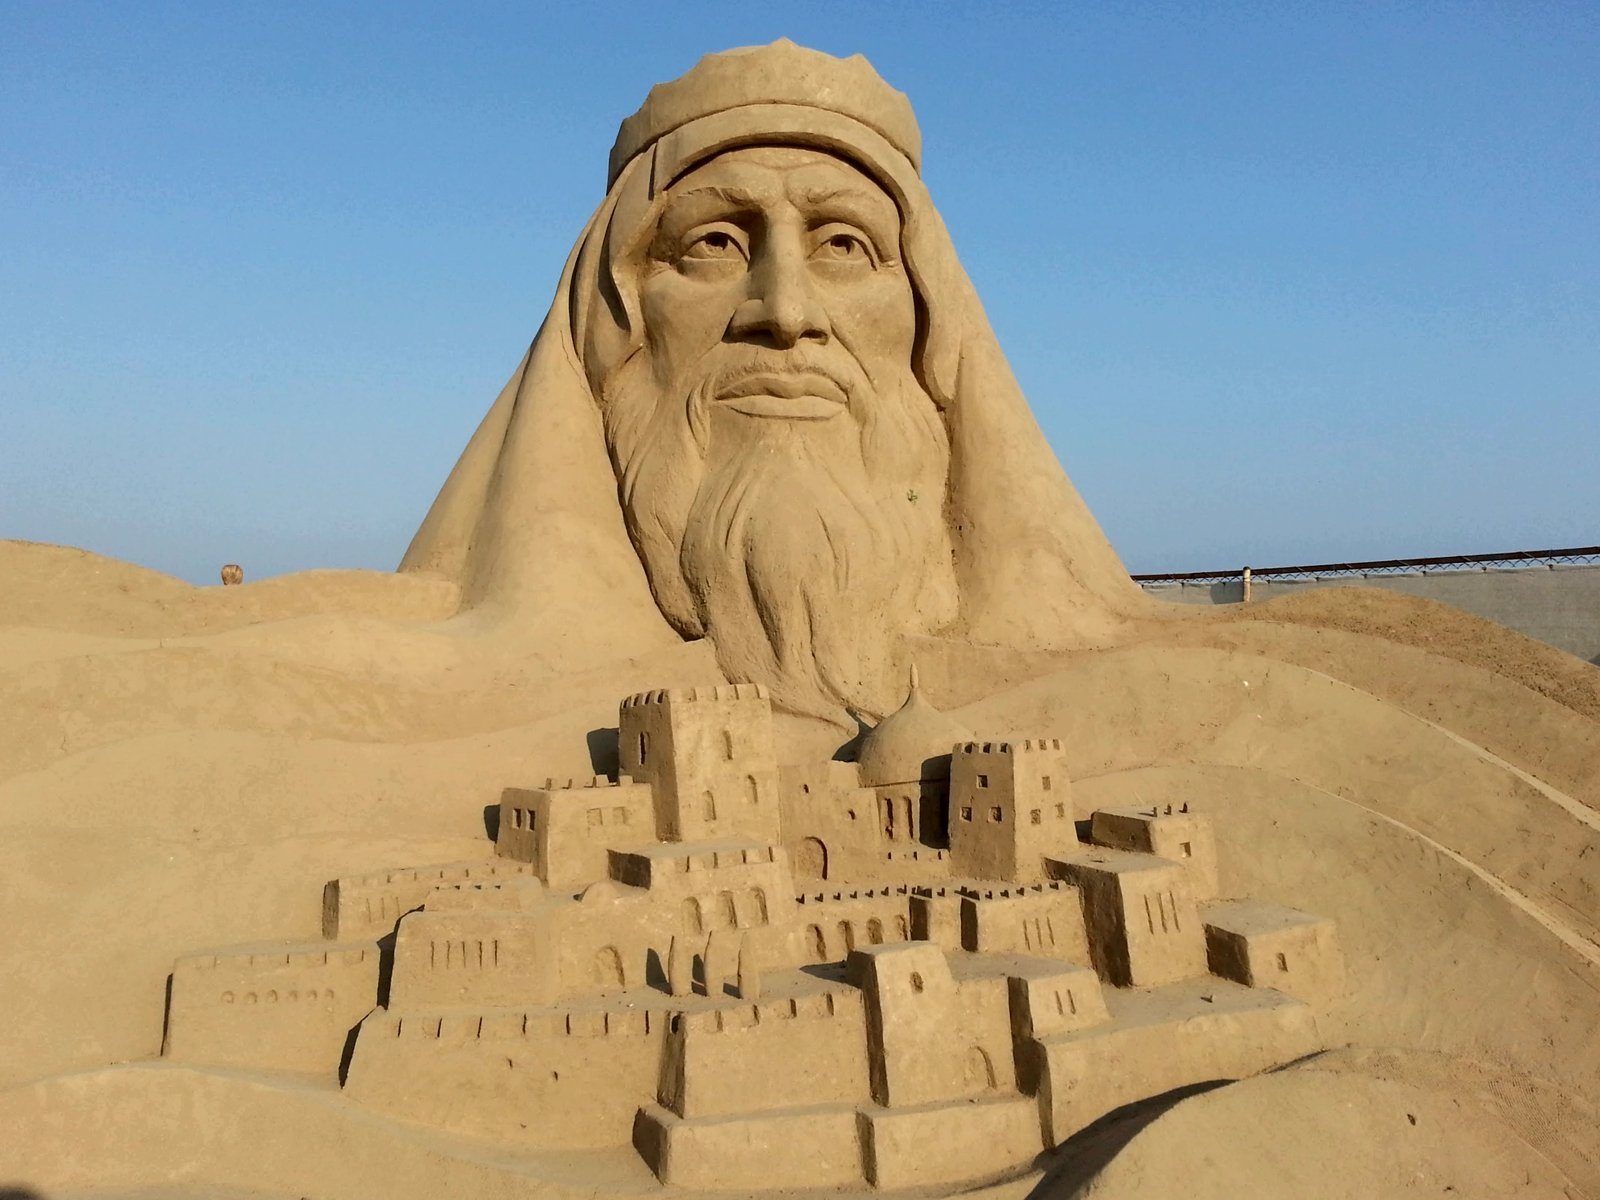 How to see incredible sand sculptures in Antalya